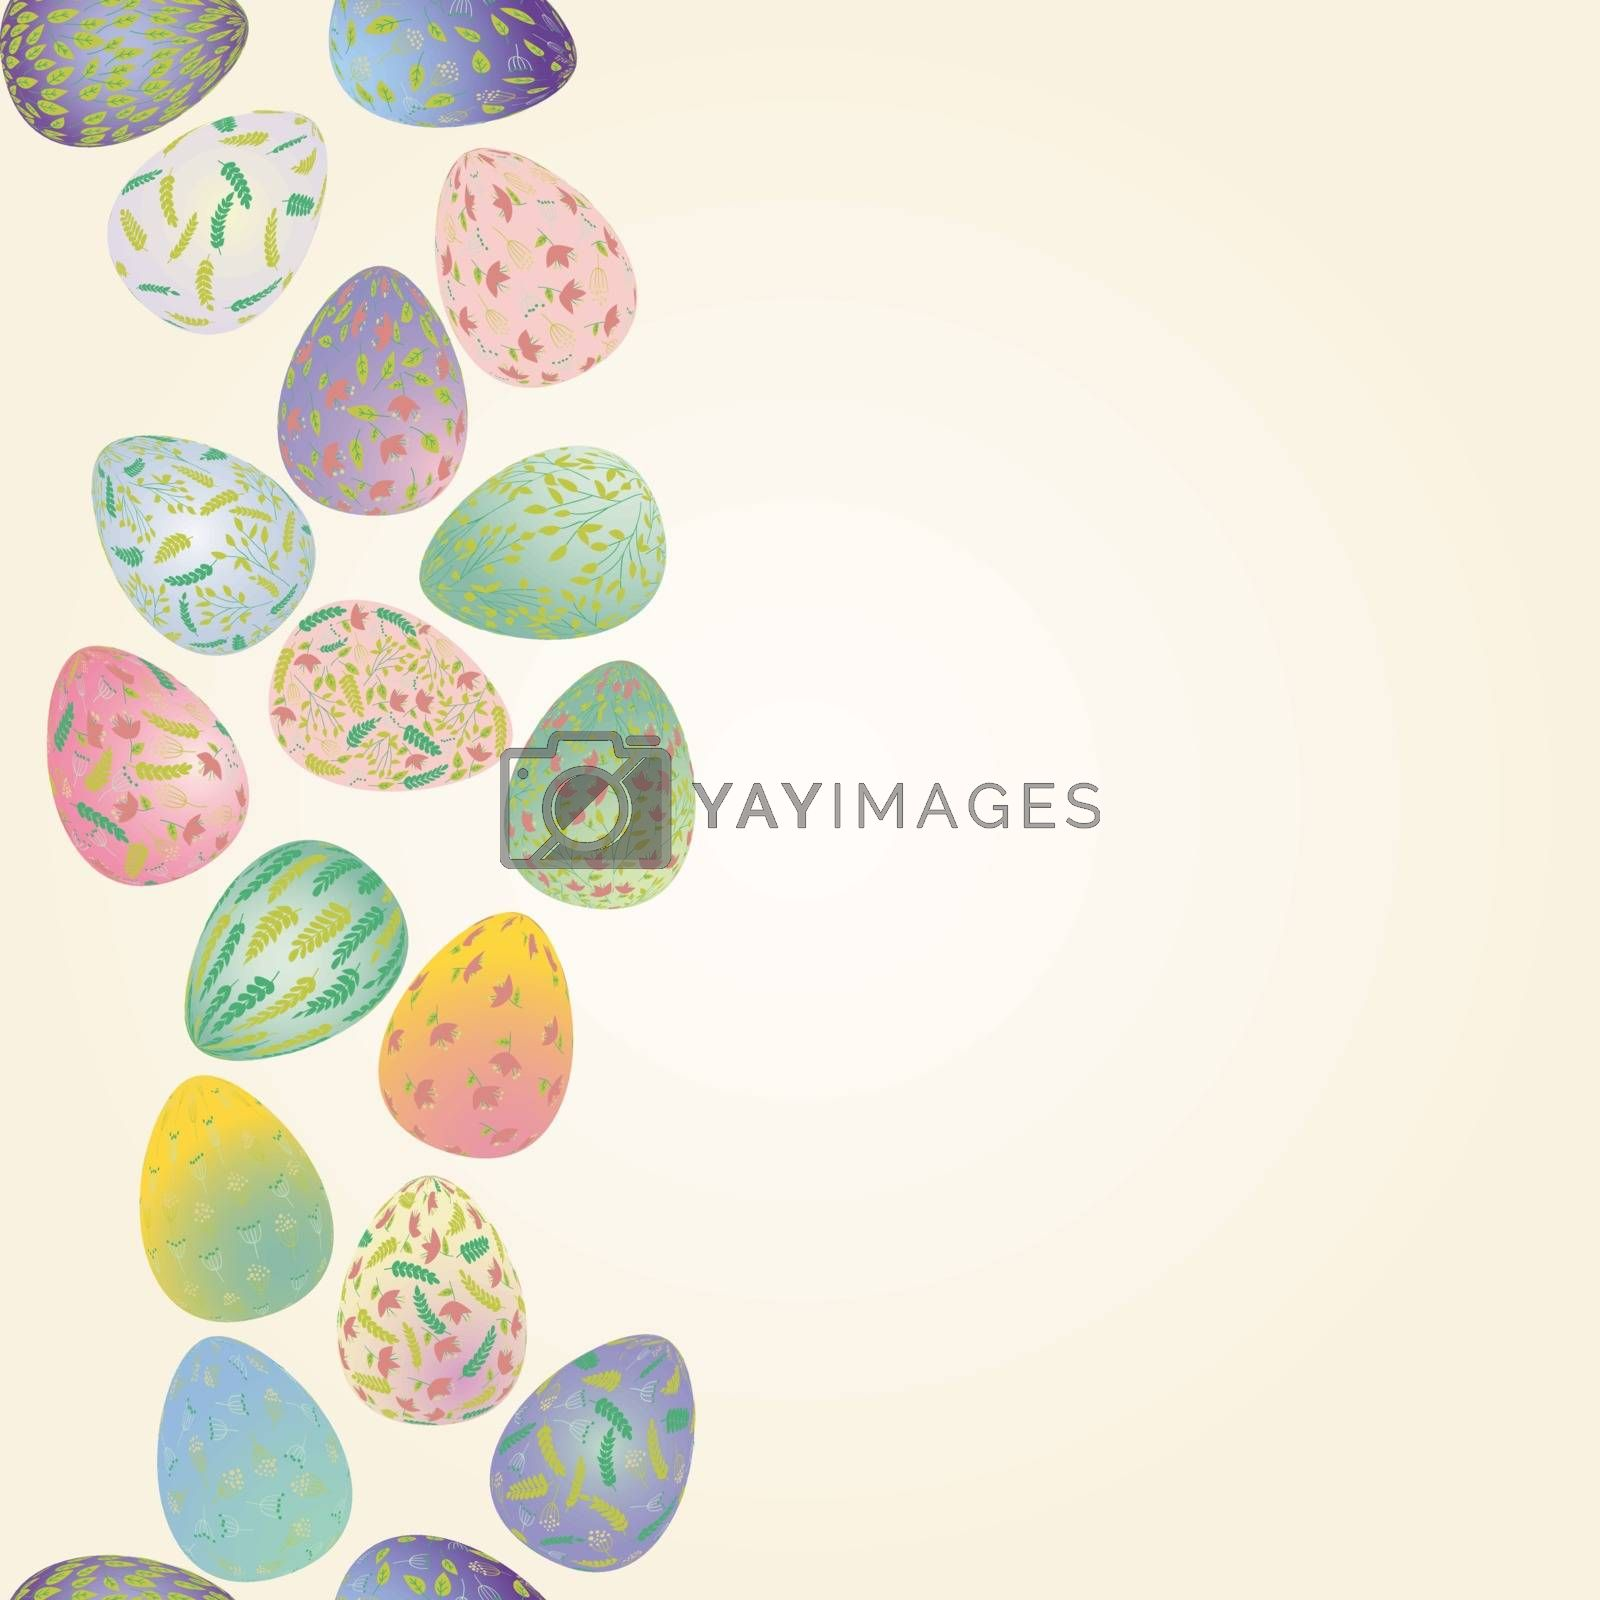 Pattern Soft pastel color Easter eggs with plant ornaments. Seamless border vector illustration. Religious holiday background decoration. Plant, floral ornament in the shape of an egg with plant ornaments on light background.